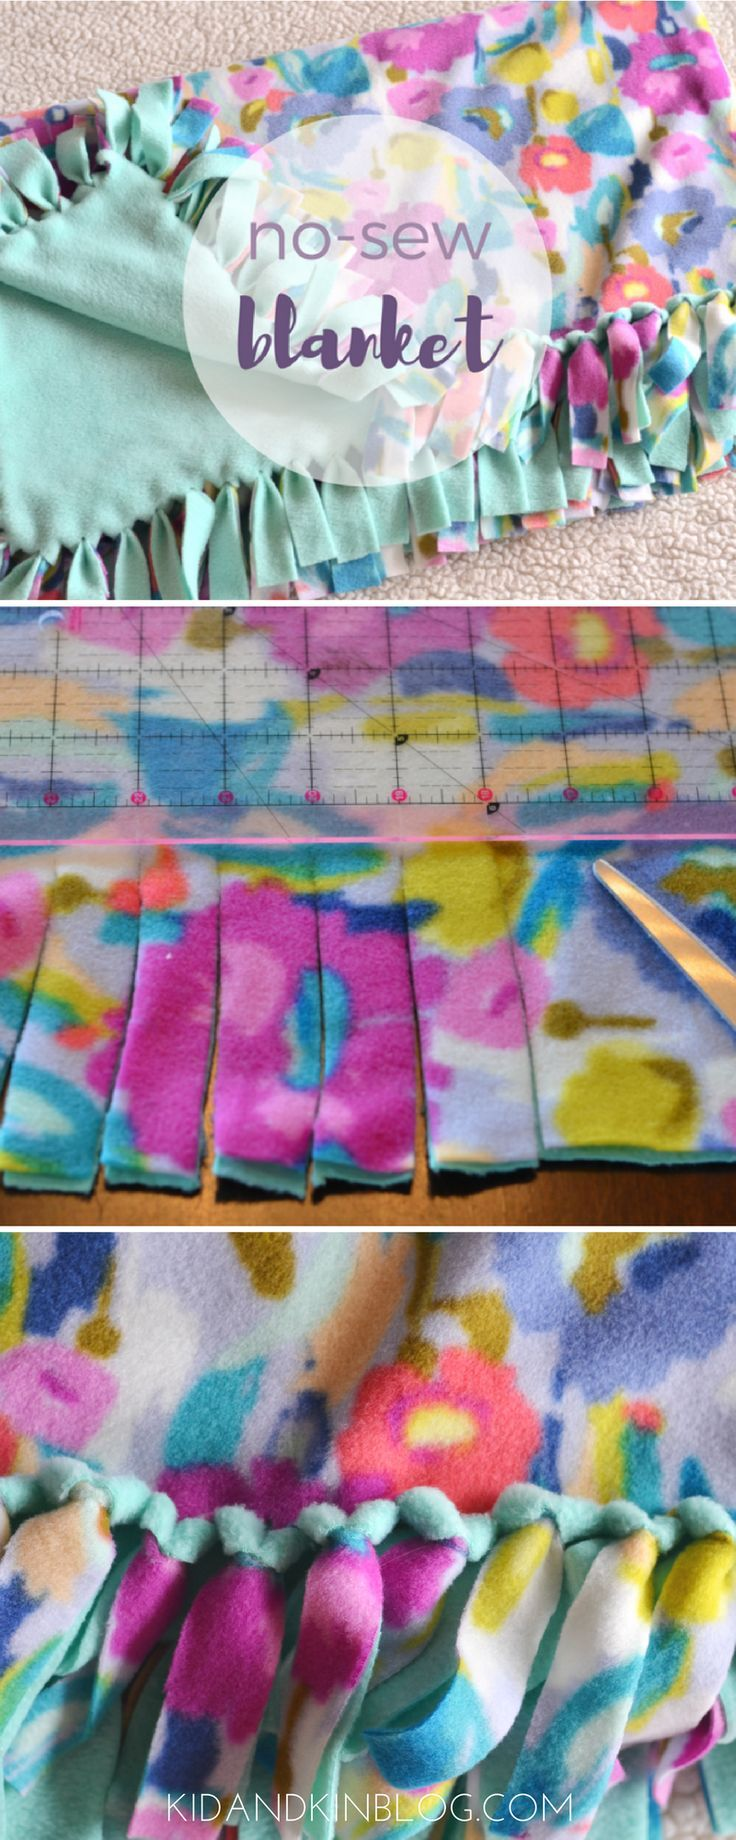 no sew fleece projects These blankets can be personalized with all the great fleece patterns & colors available an added bonus, this is a quick and easy project i like to use a pattern.